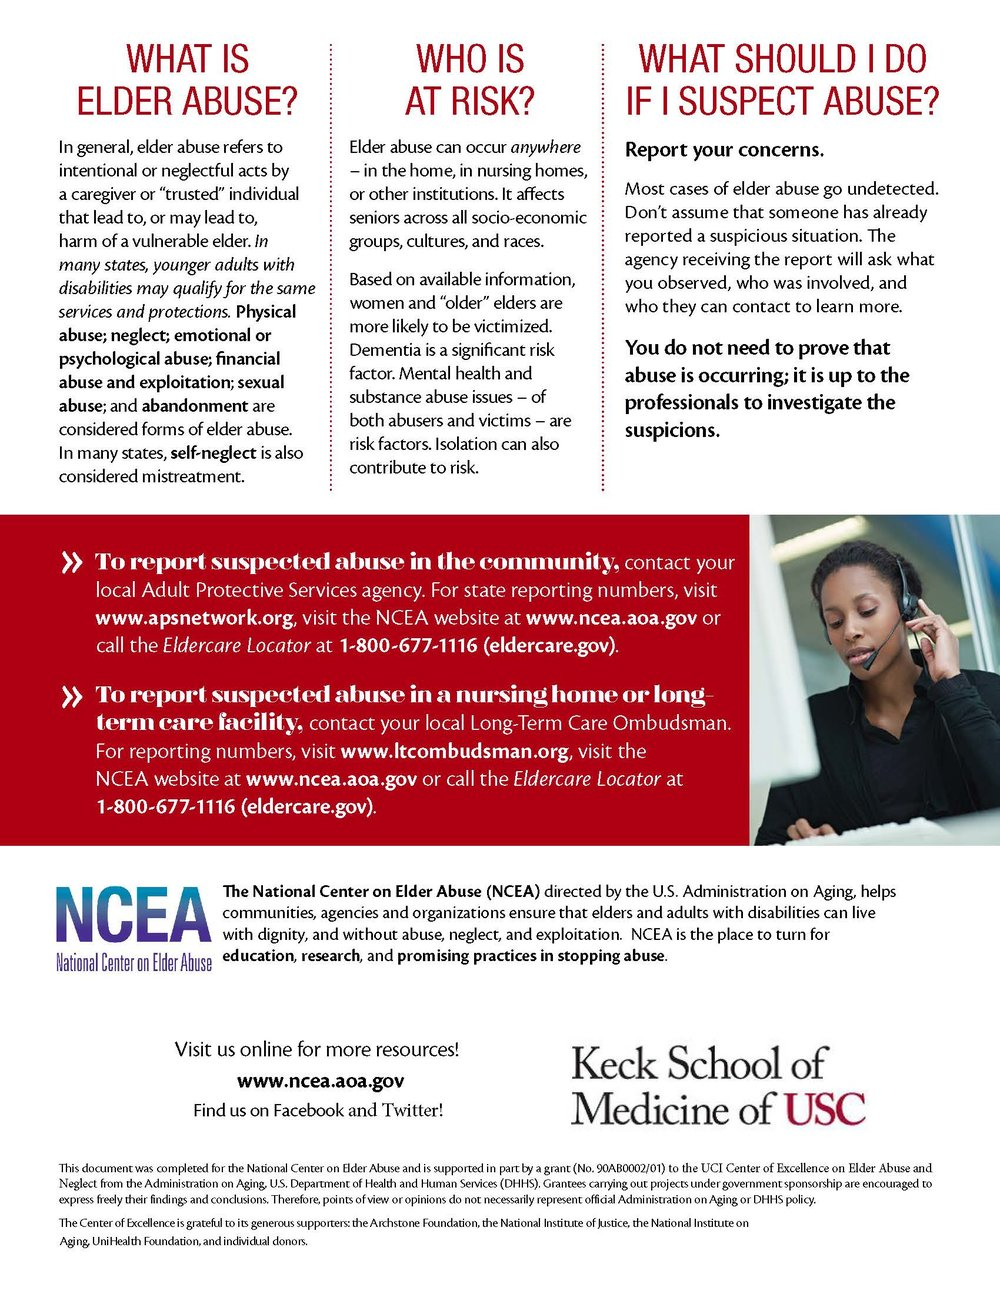 Red-Flags-Elder-Abuse-NCEA-2015_Page_2.jpg